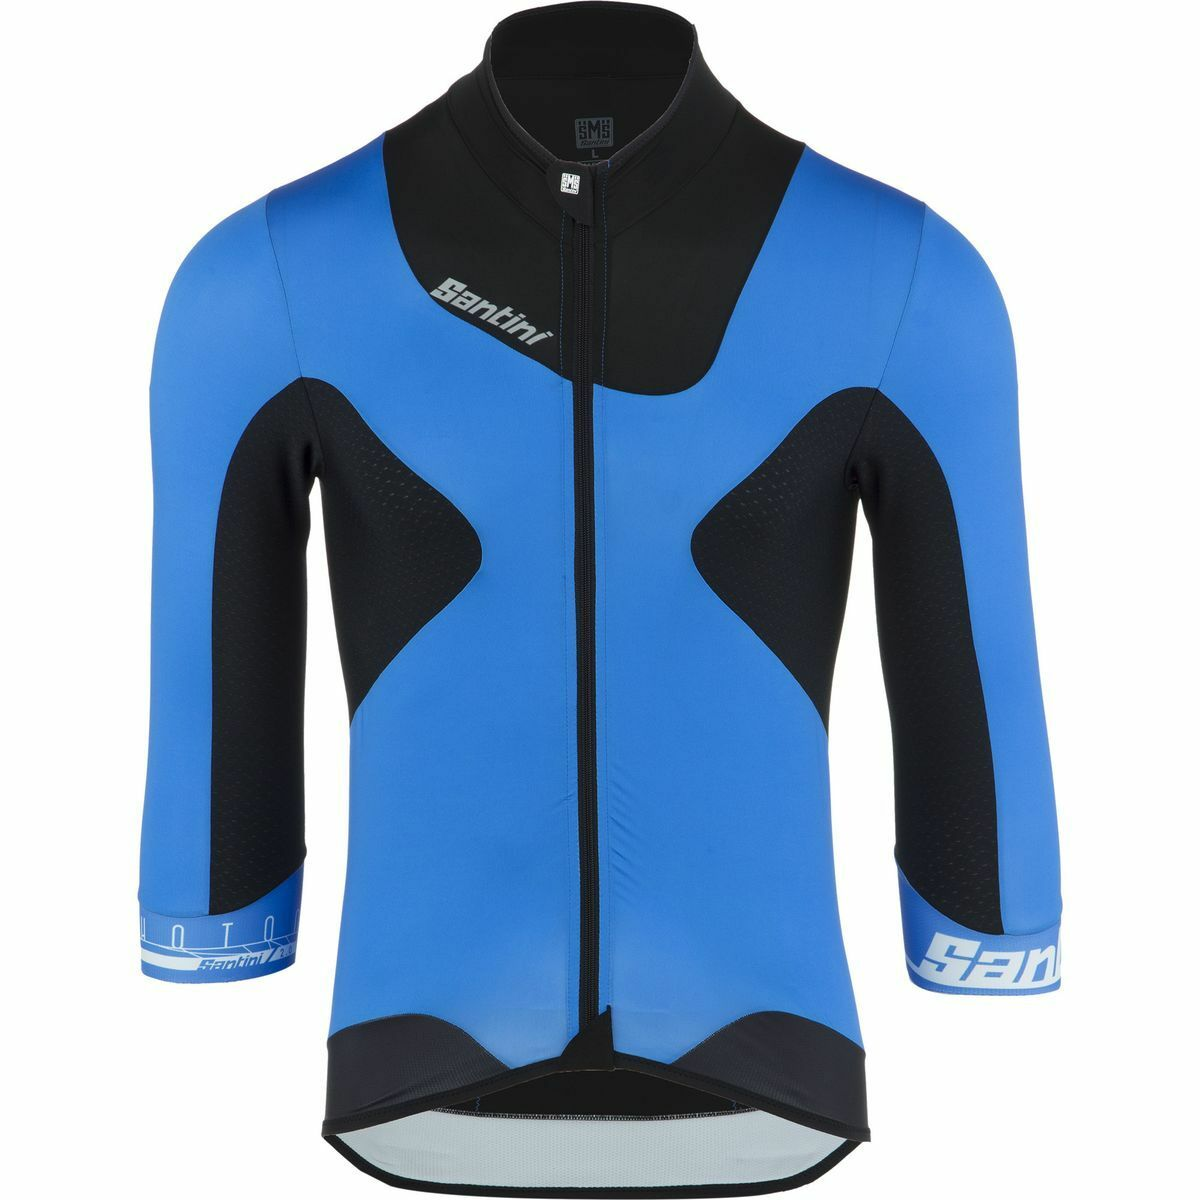 Photon 2.0 Aero Cycling Jersey with 3 4 length sleeves in bluee- by Santini